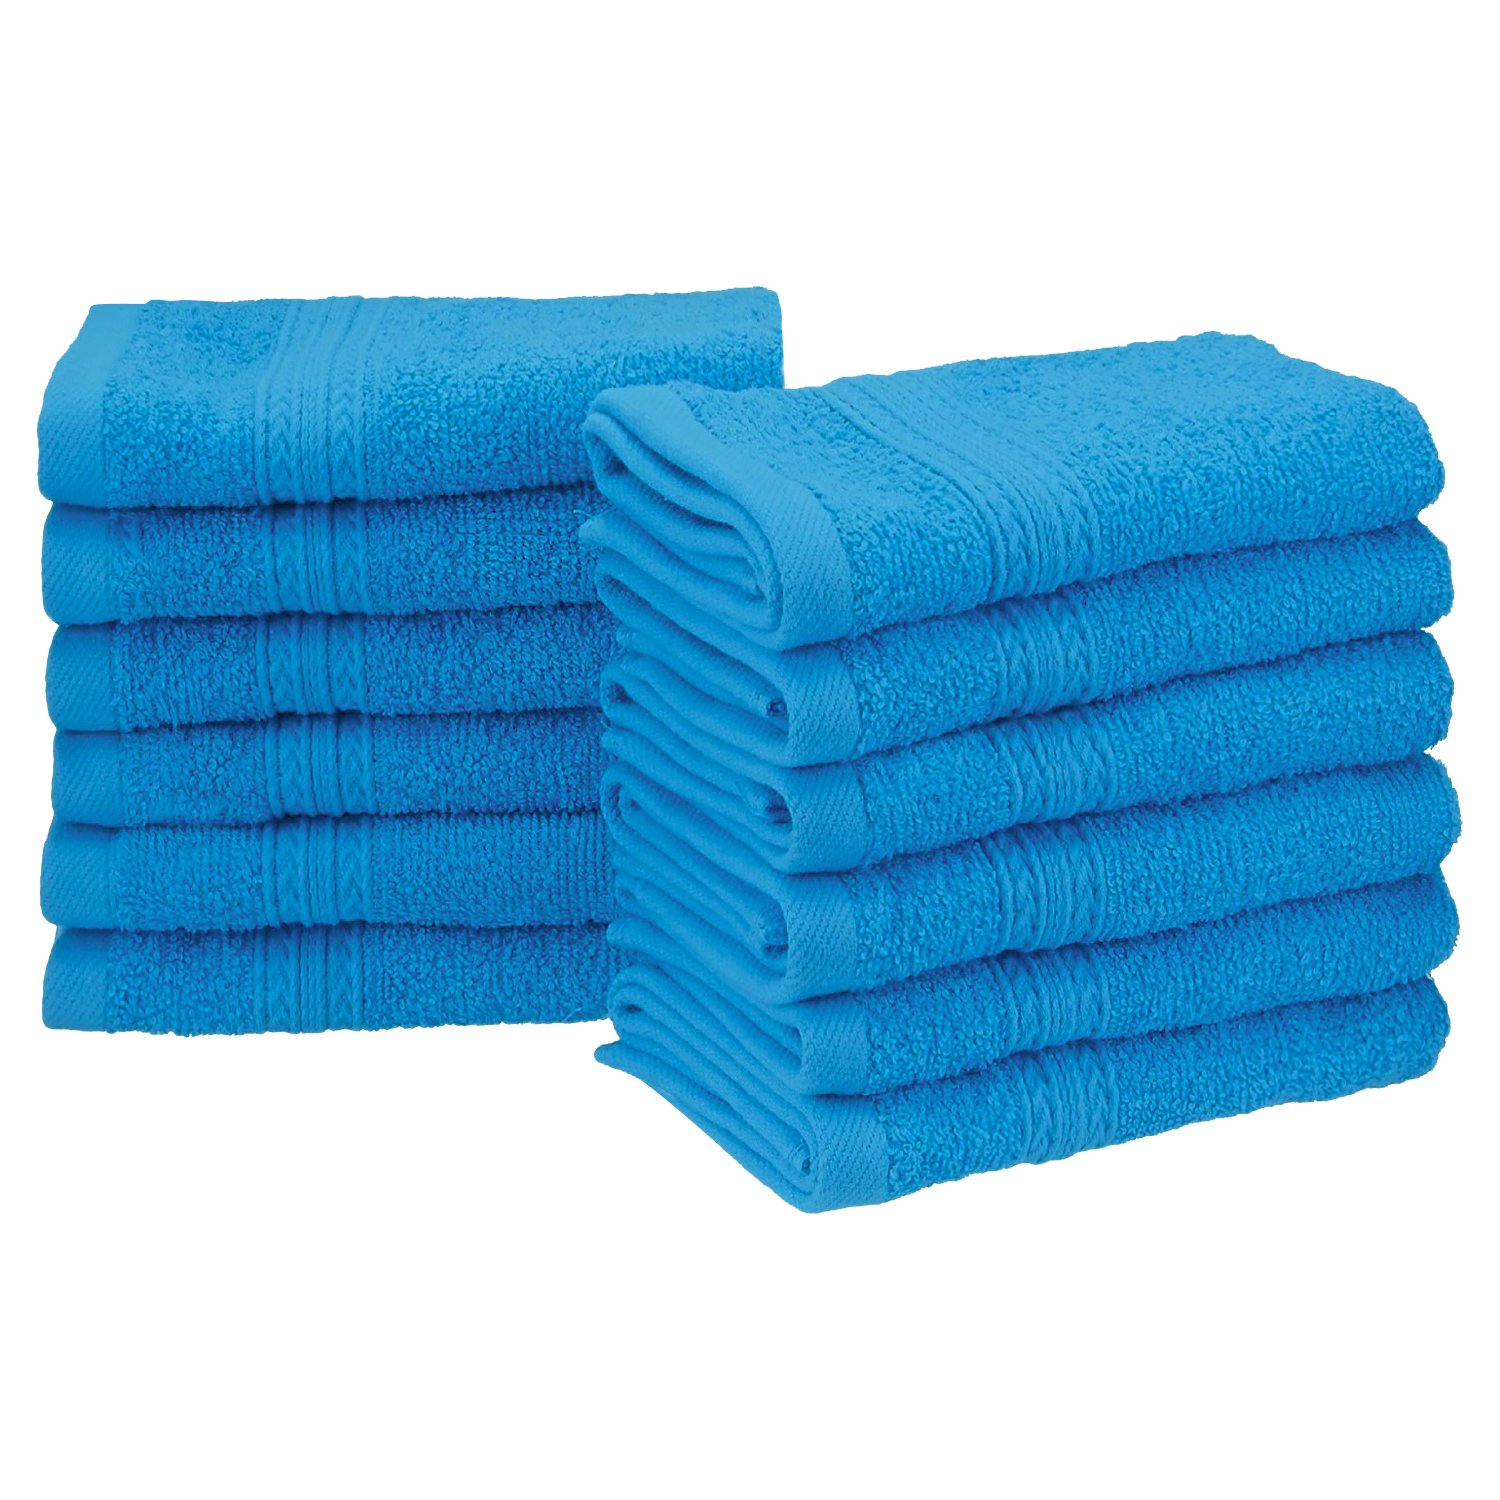 """Superior Eco-Friendly 100% Ringspun Cotton, 12 Piece Face Towel Set (13"""" x 13"""") in Aster Blue"""